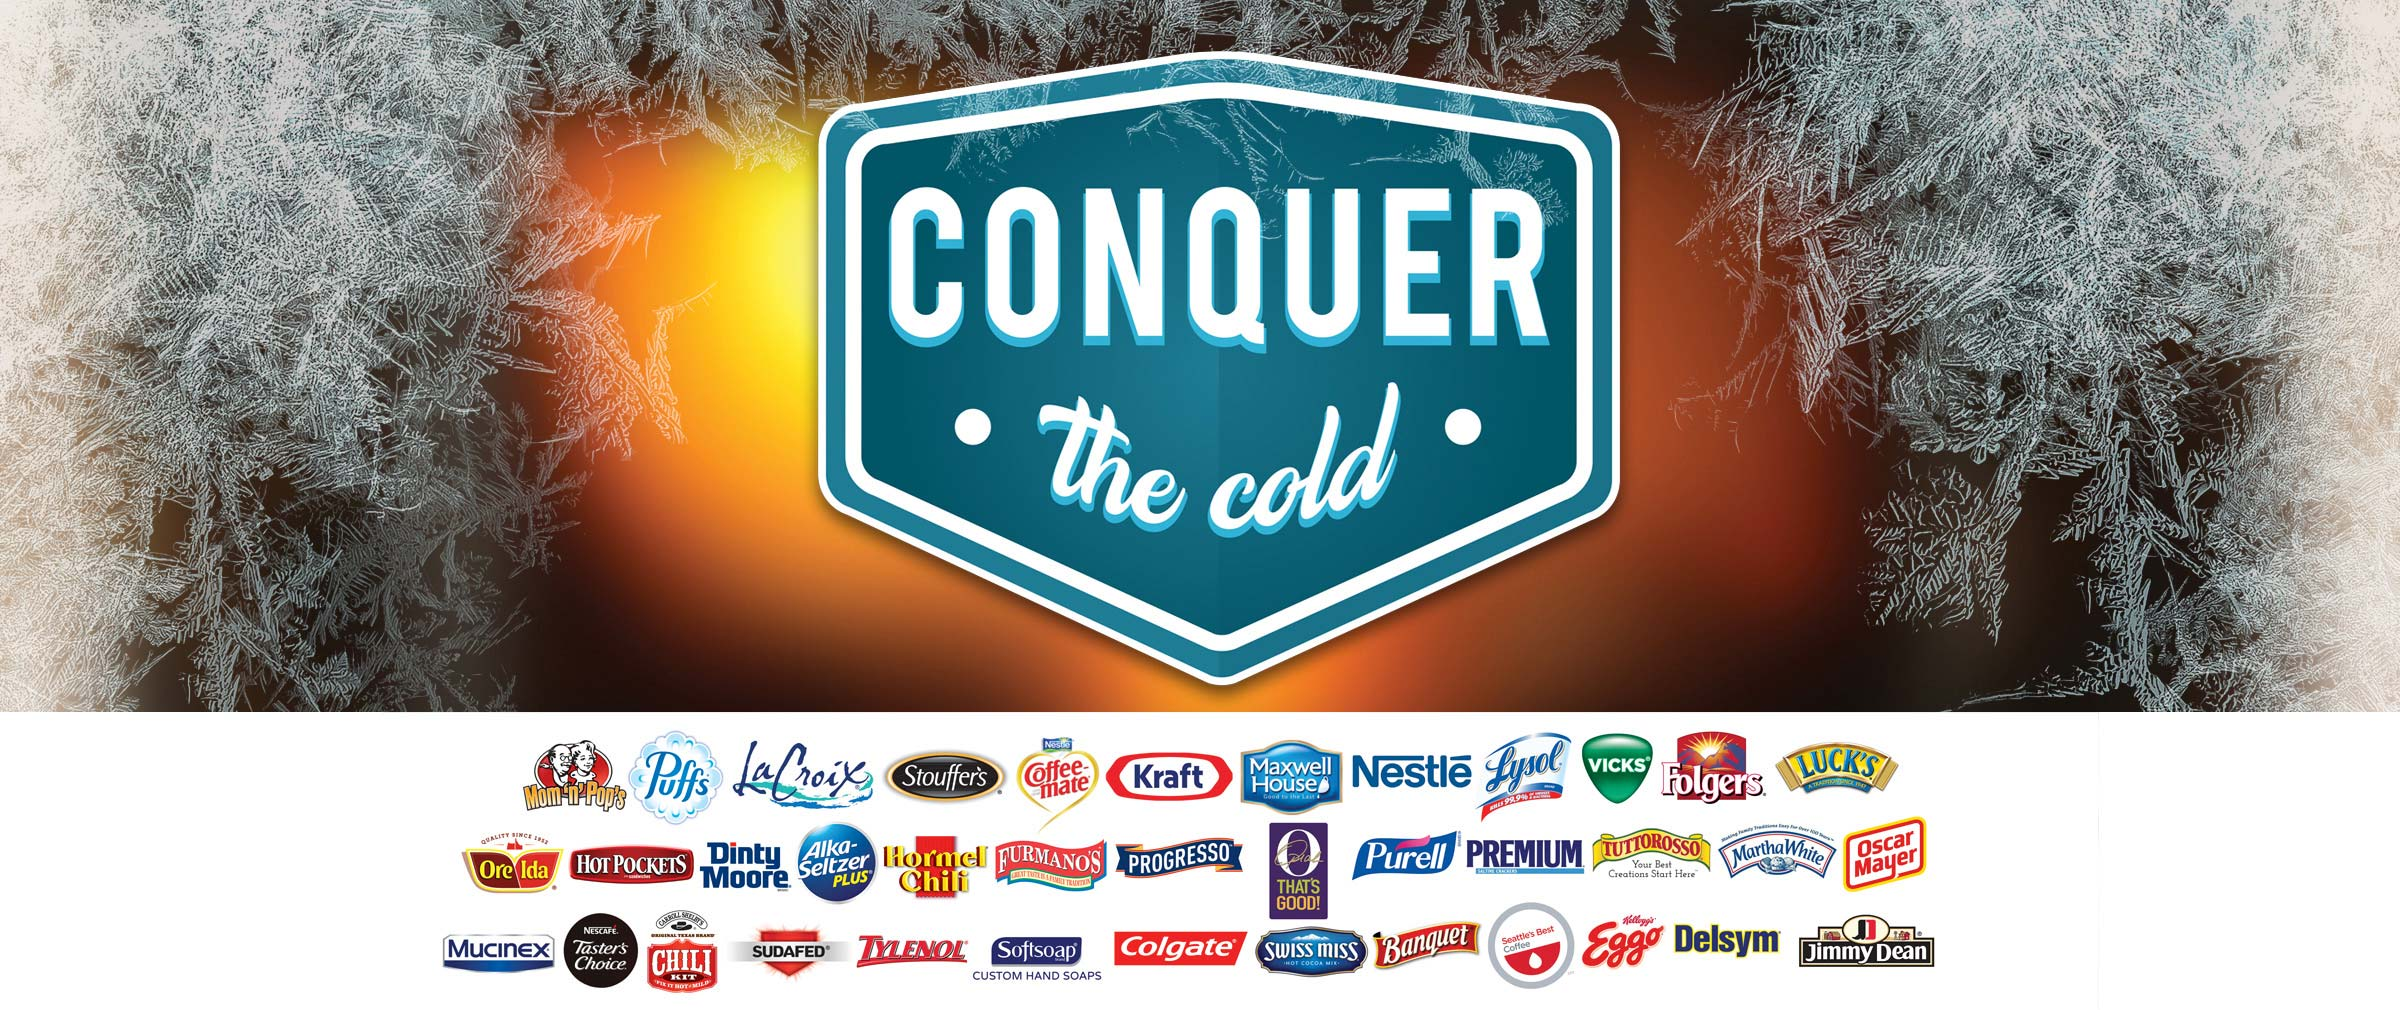 ConquertheCold-webslider-JustSave